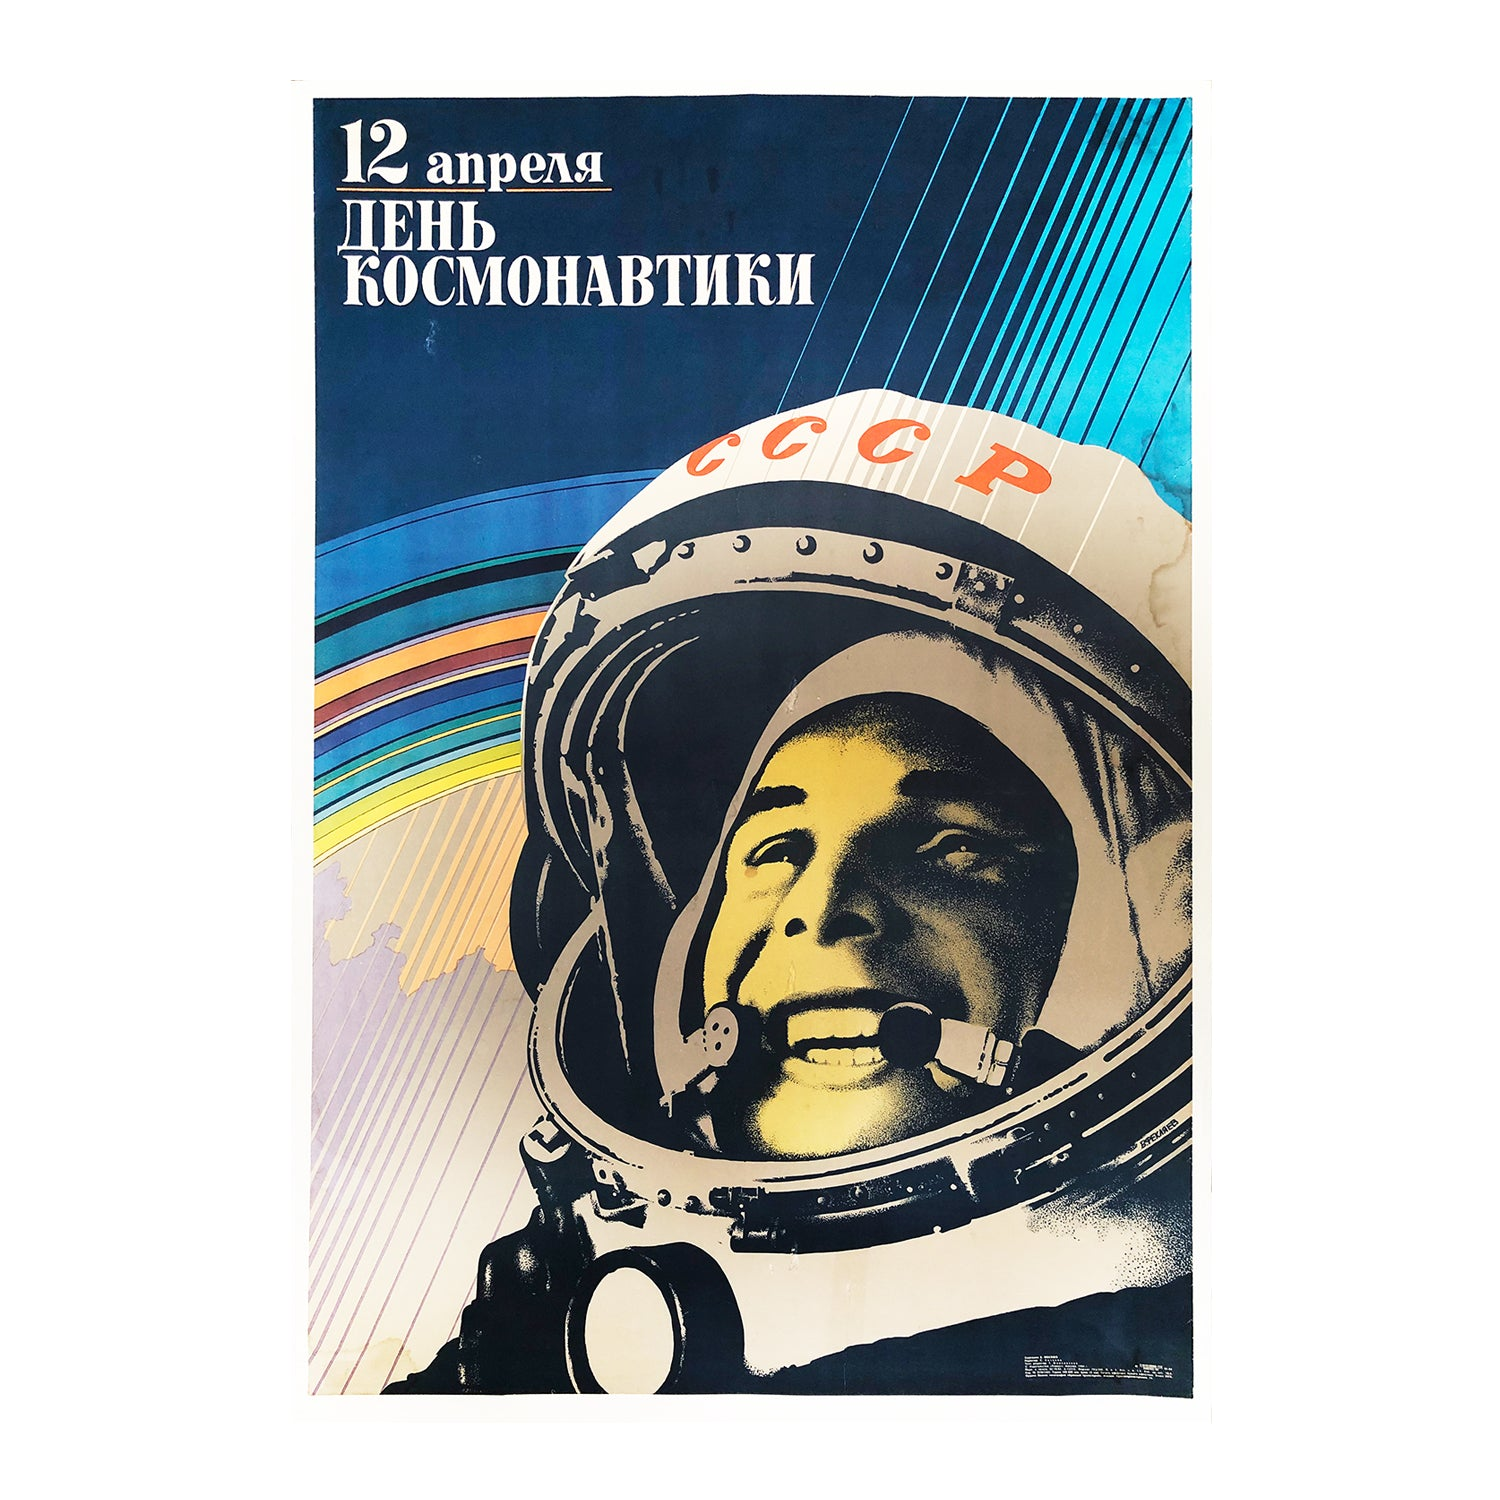 Original vintage USSR space exploration propaganda poster, featuring the pilot and cosmonaut Yuri Gagarin (1934-1968)